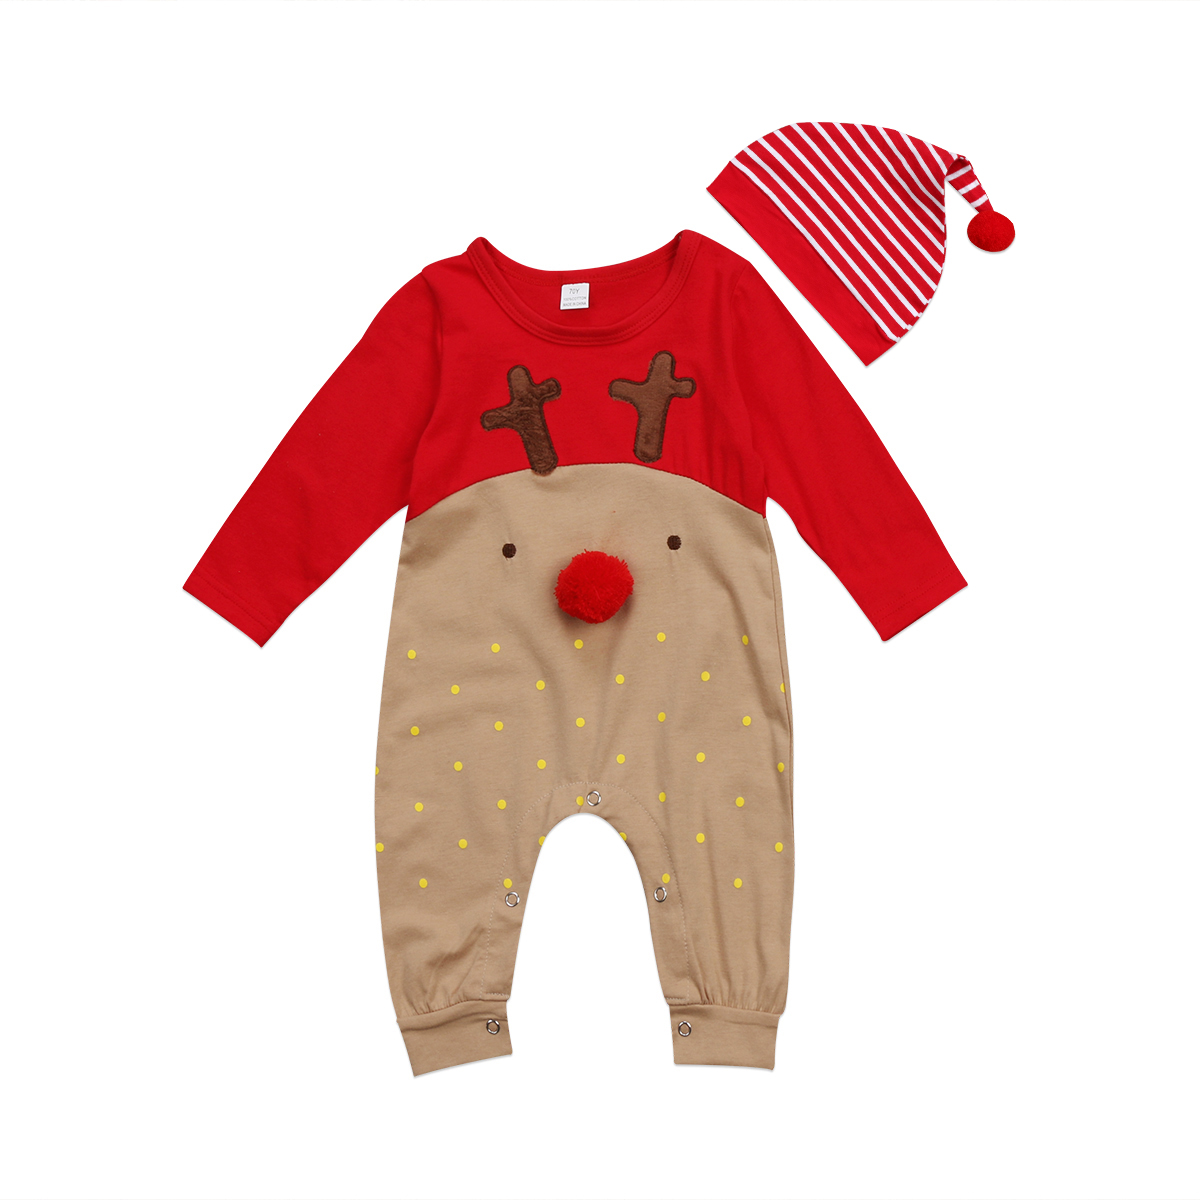 Pudcoco Newborn Baby Clothing Boy Girl Cute Christmas Romper Jumpsuit Long Sleeve Deer Xmas Cartoon Outfits Clothes 2017 new adorable summer games infant newborn baby boy girl romper jumpsuit outfits clothes clothing